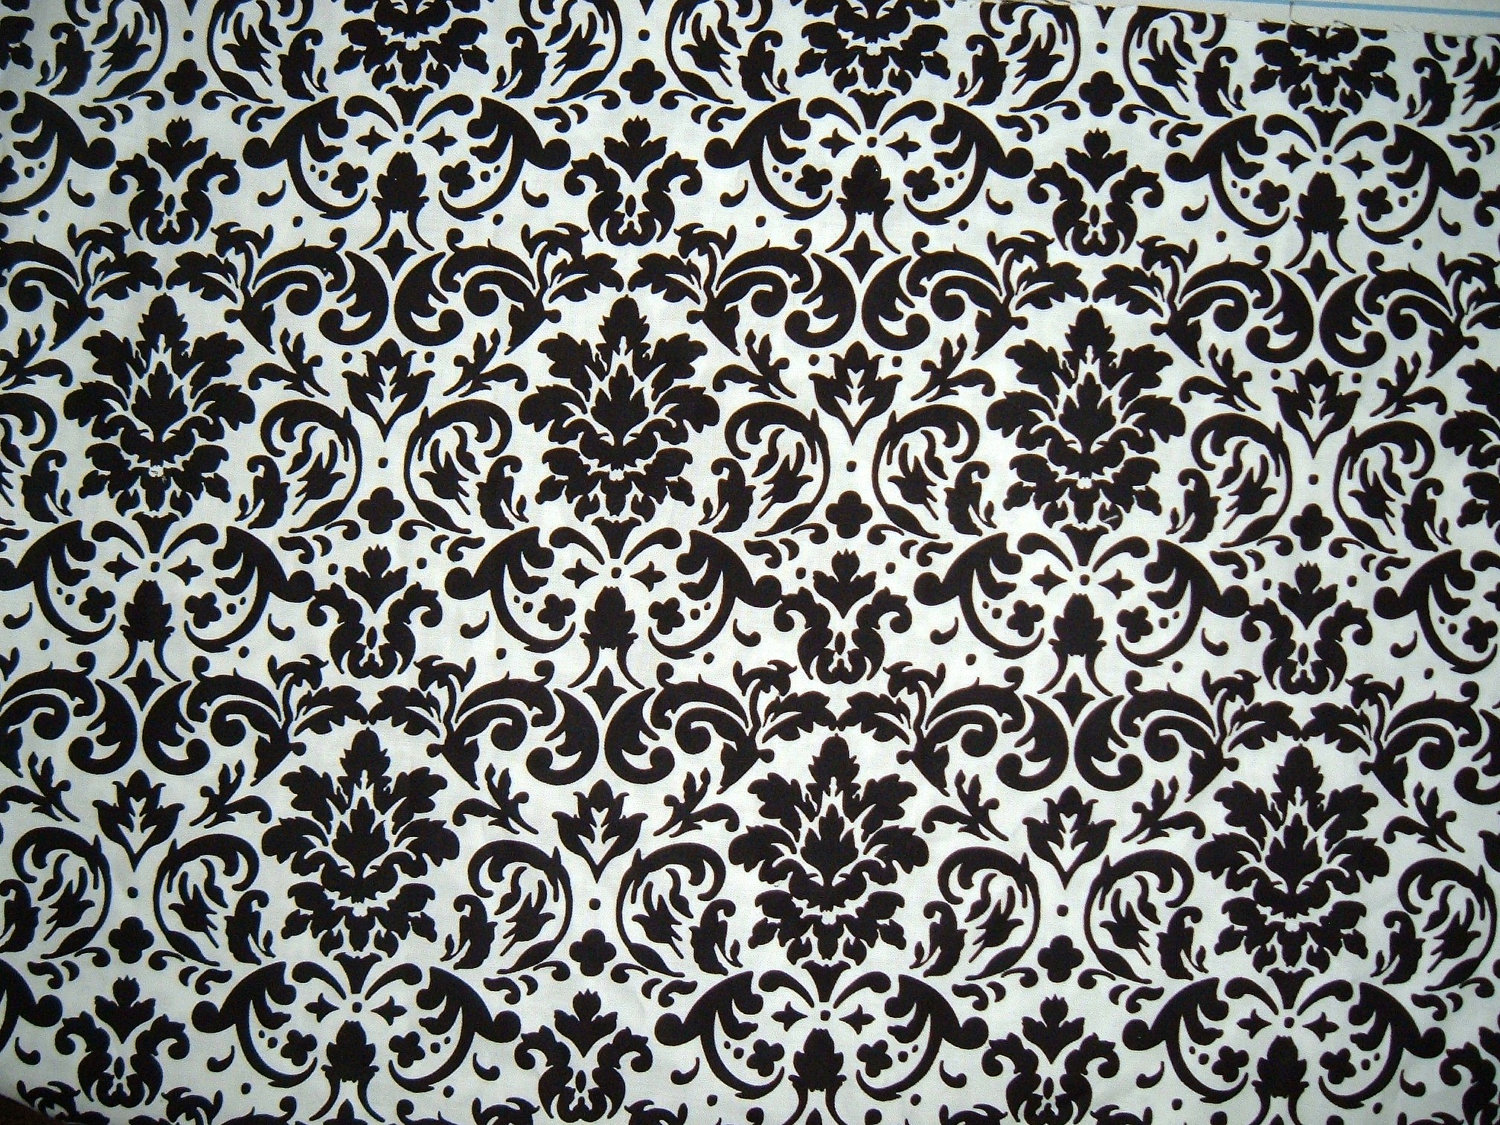 Black And White Damask Wallpaper 23 Background ...